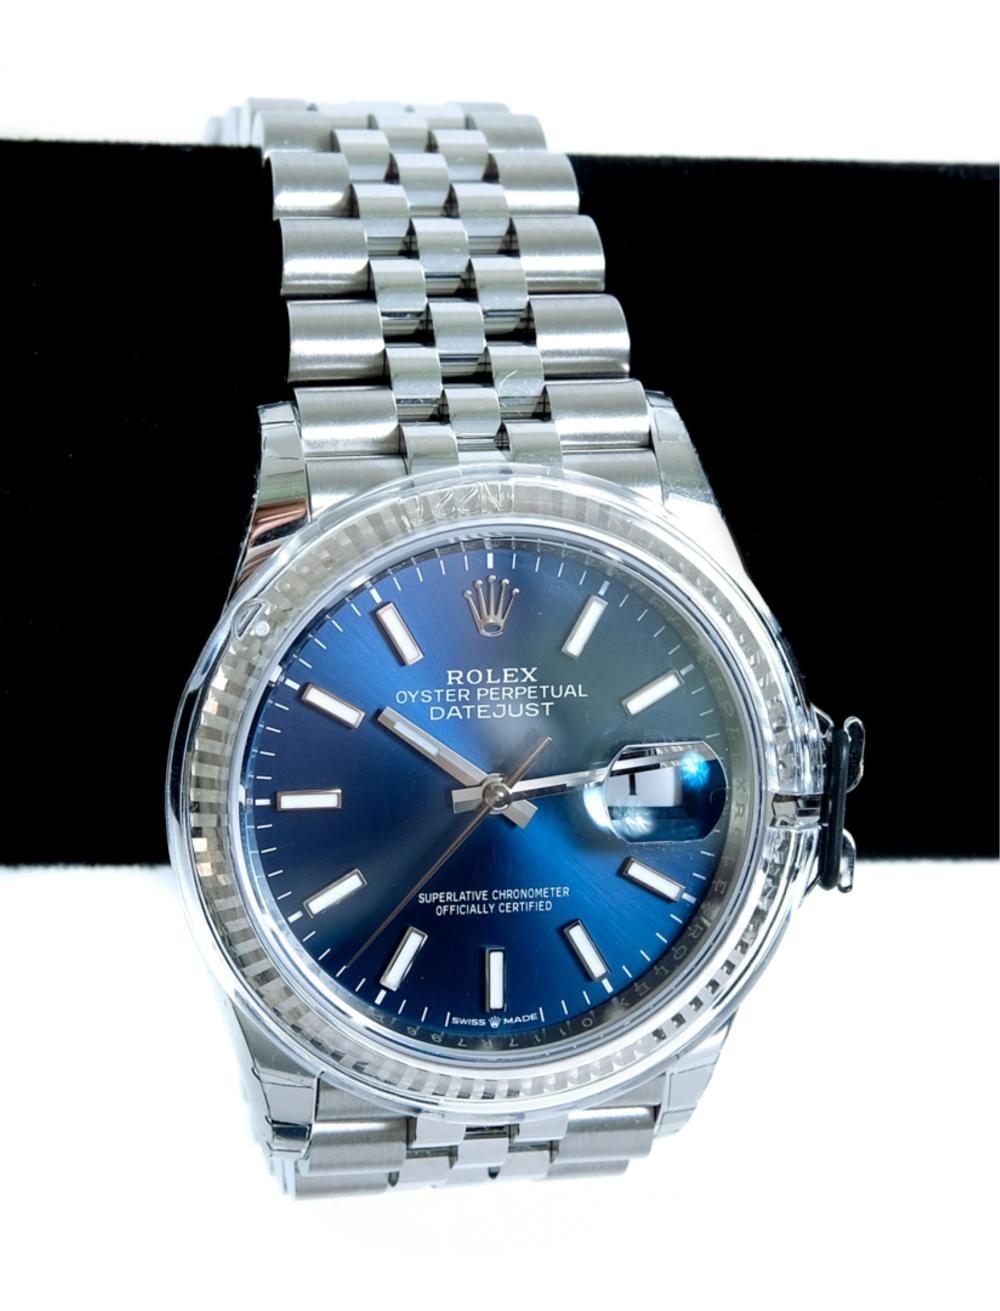 Men's Rolex Oyster Perpetual Datejust Watch NEW